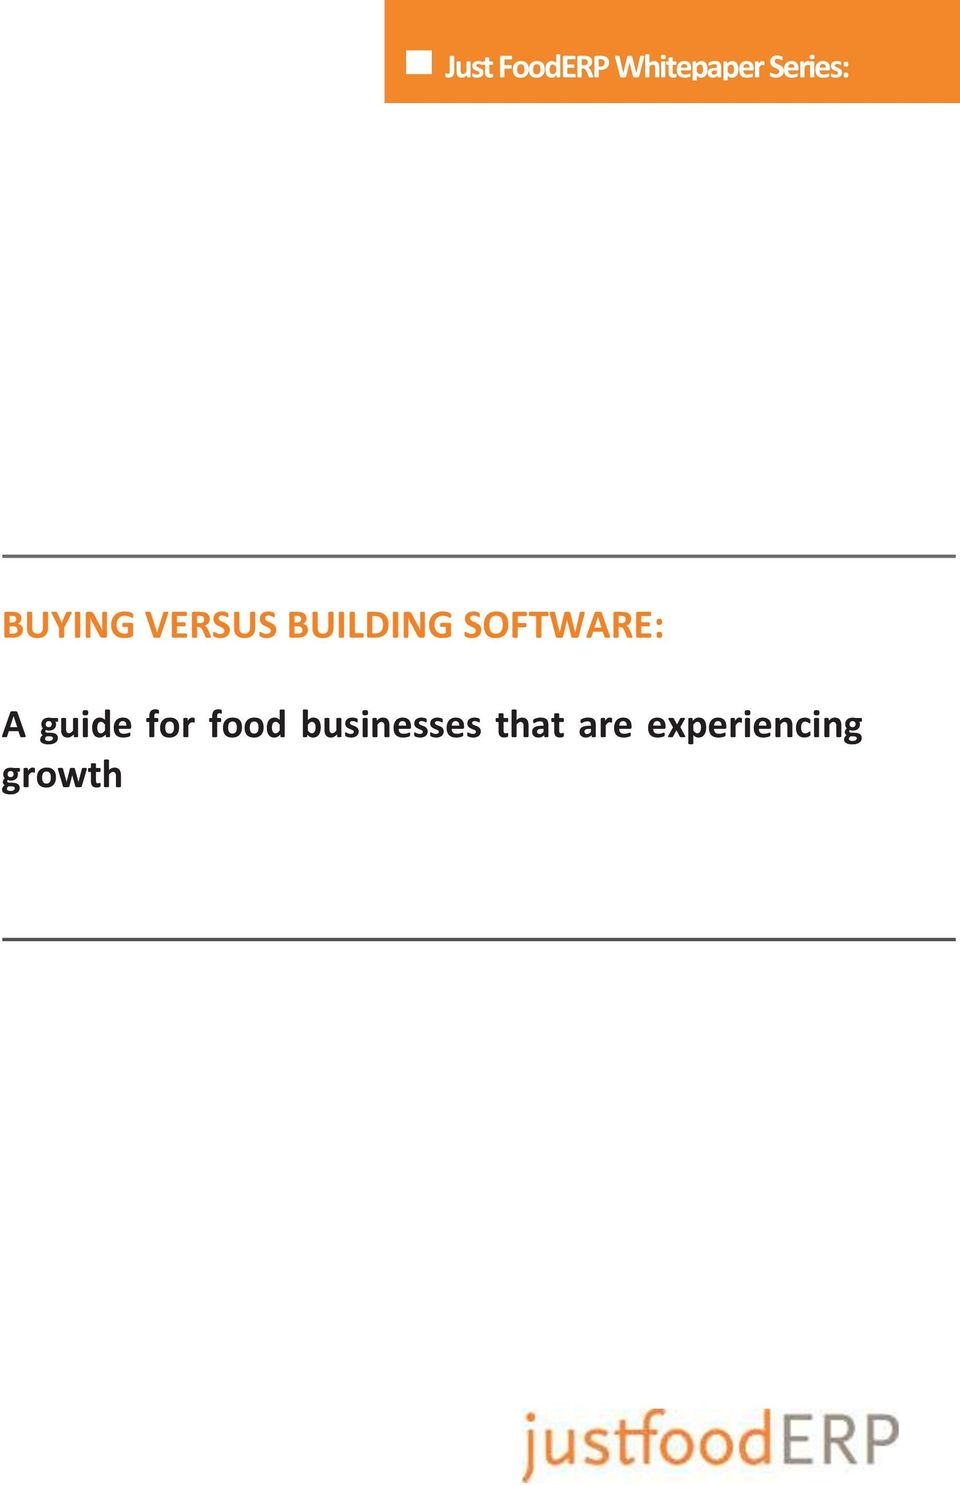 SOFTWARE: A guide for food